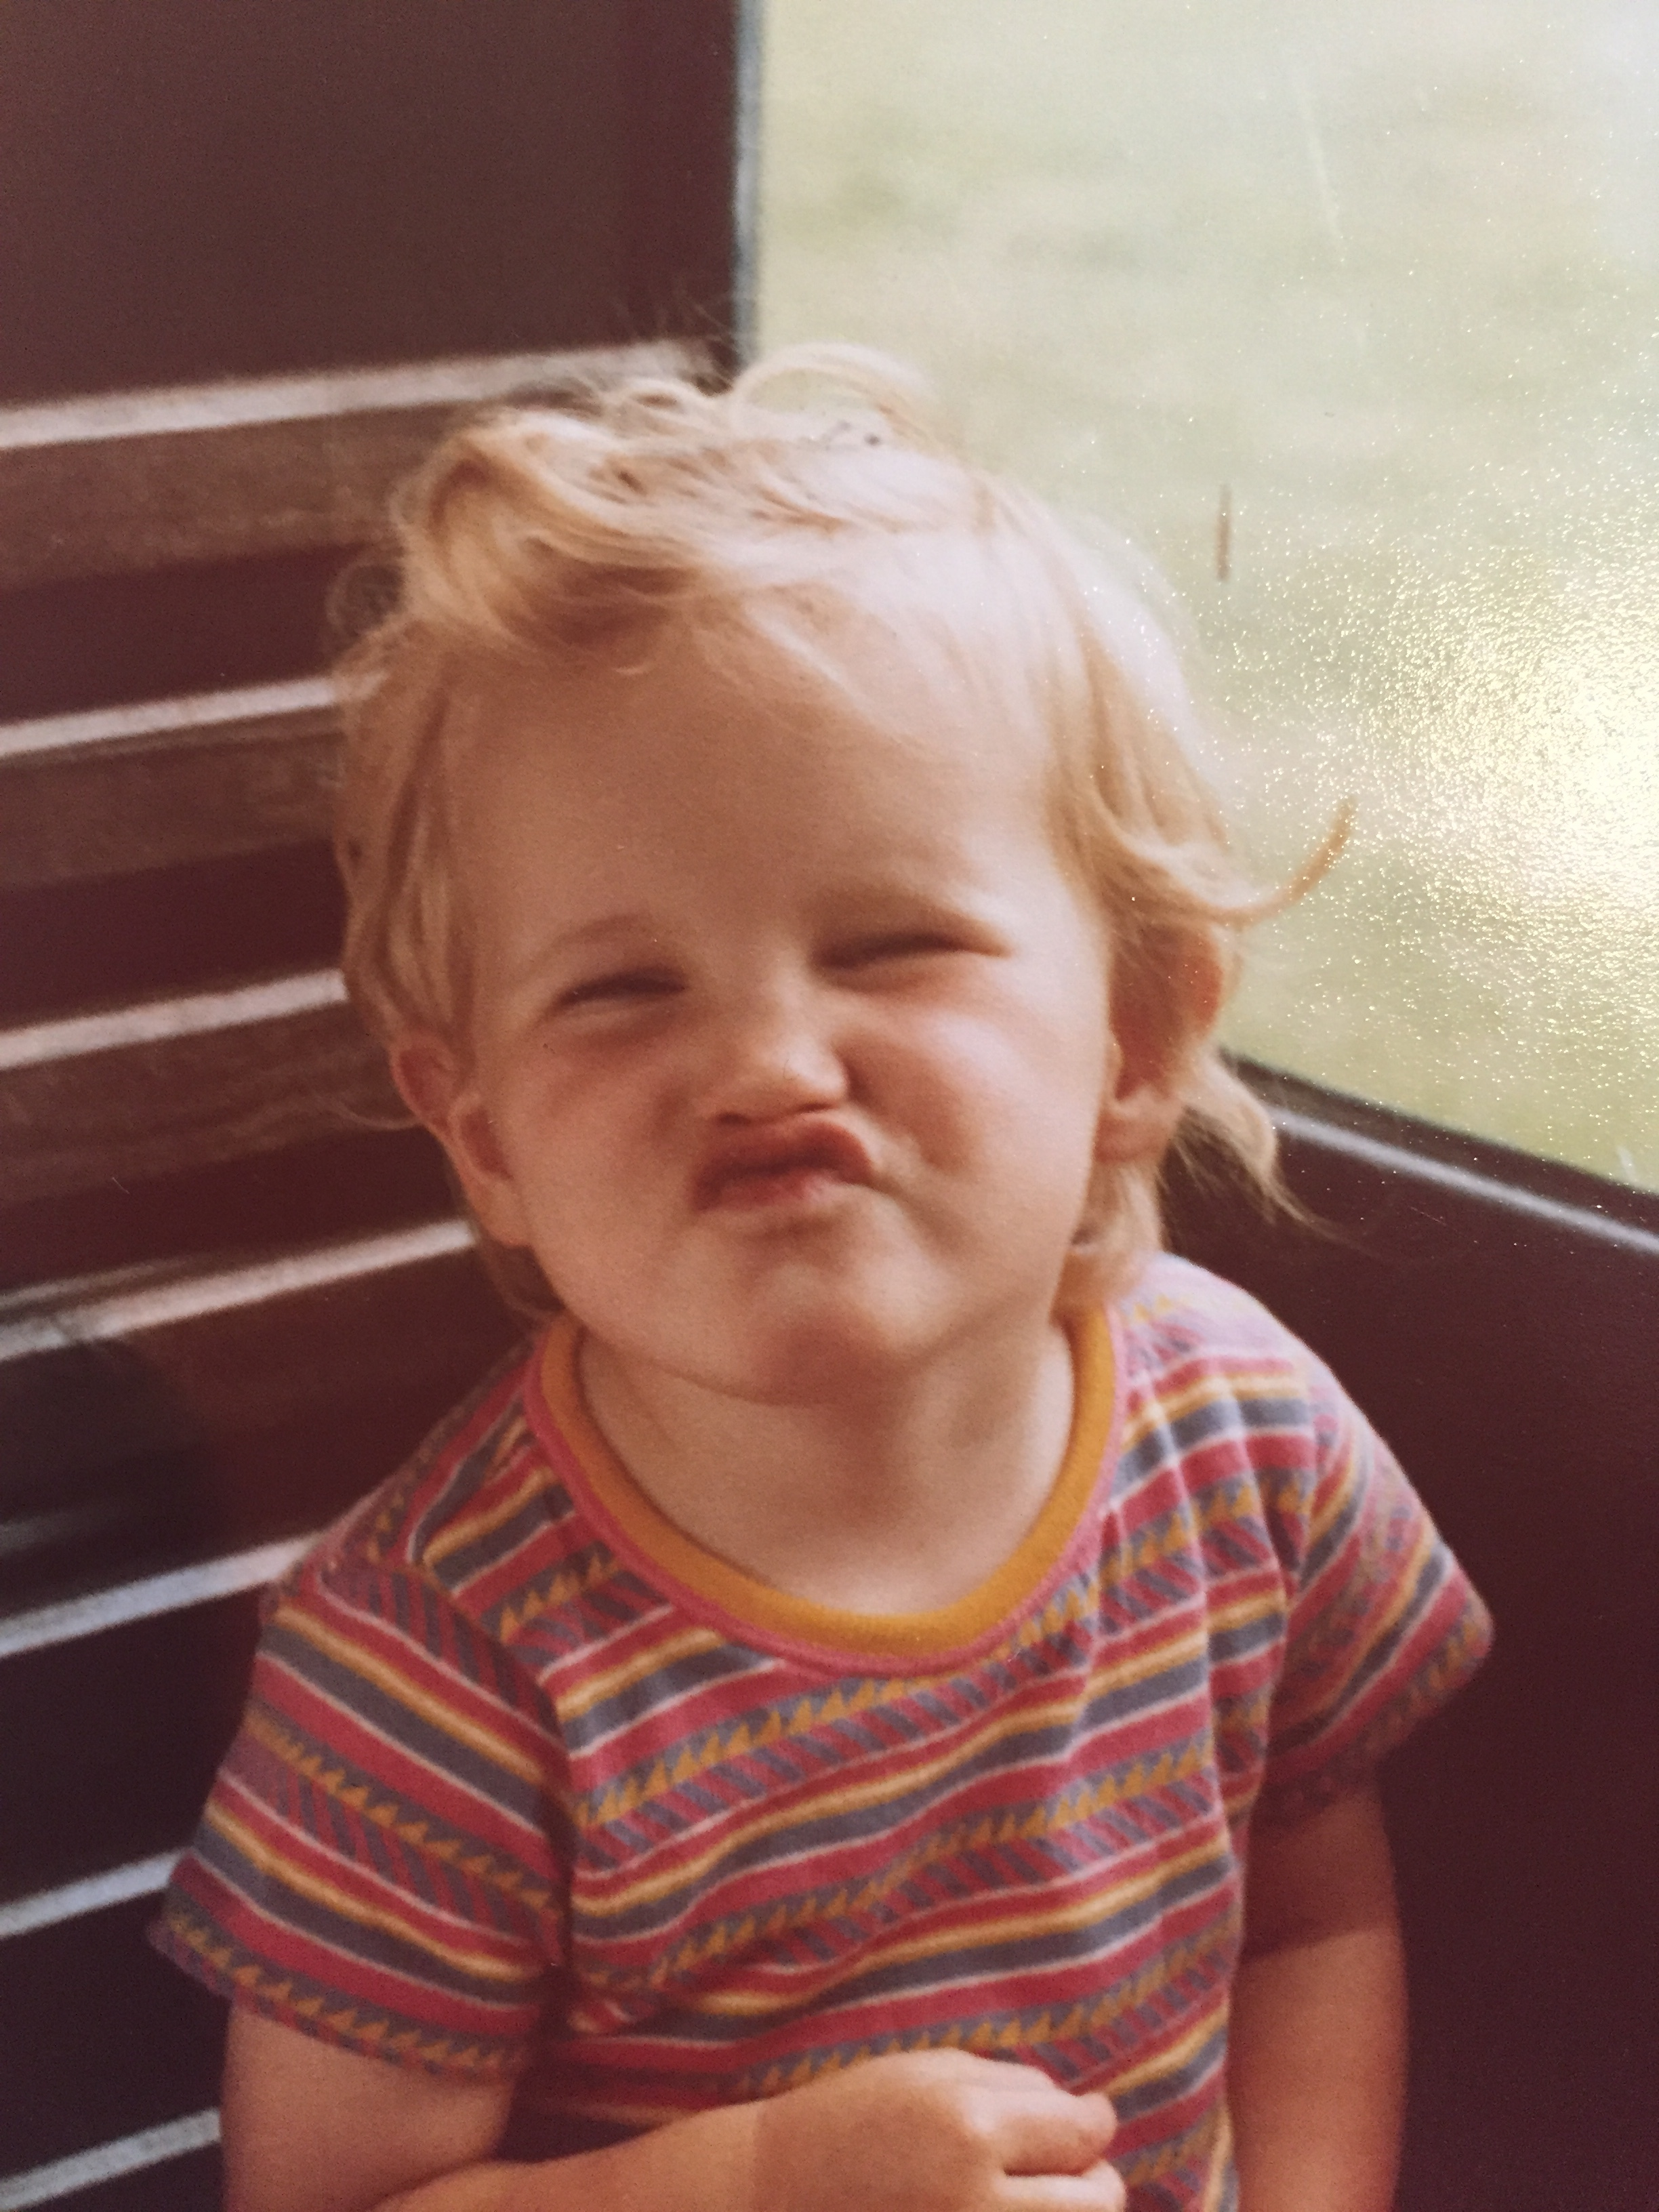 A young girl making a funny face.